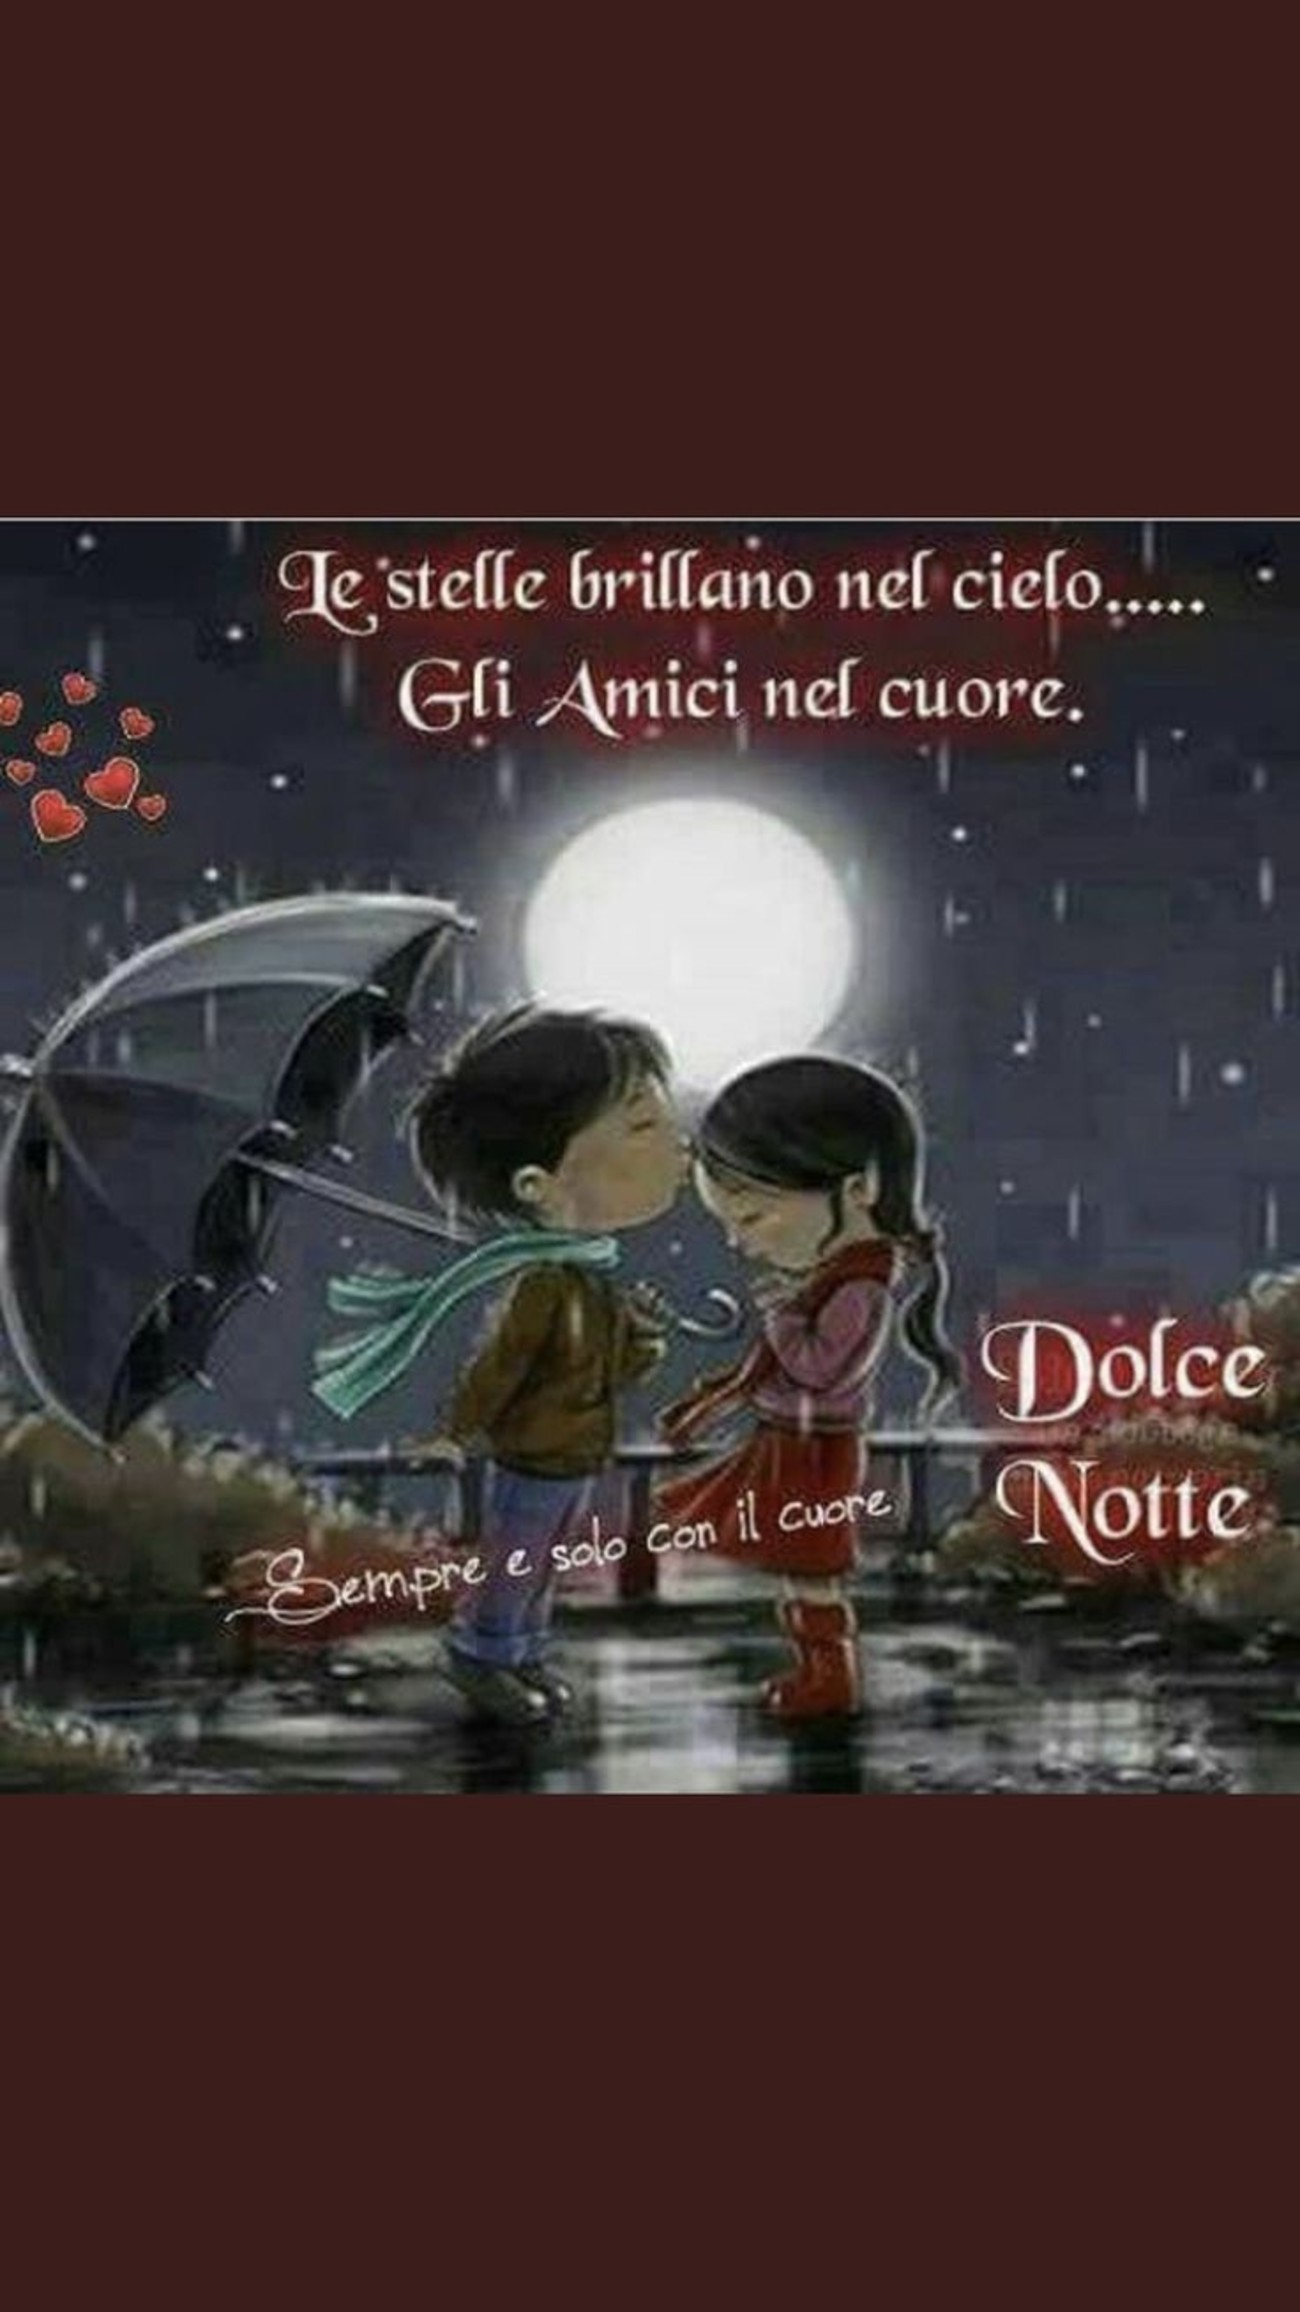 Dolce notte amici